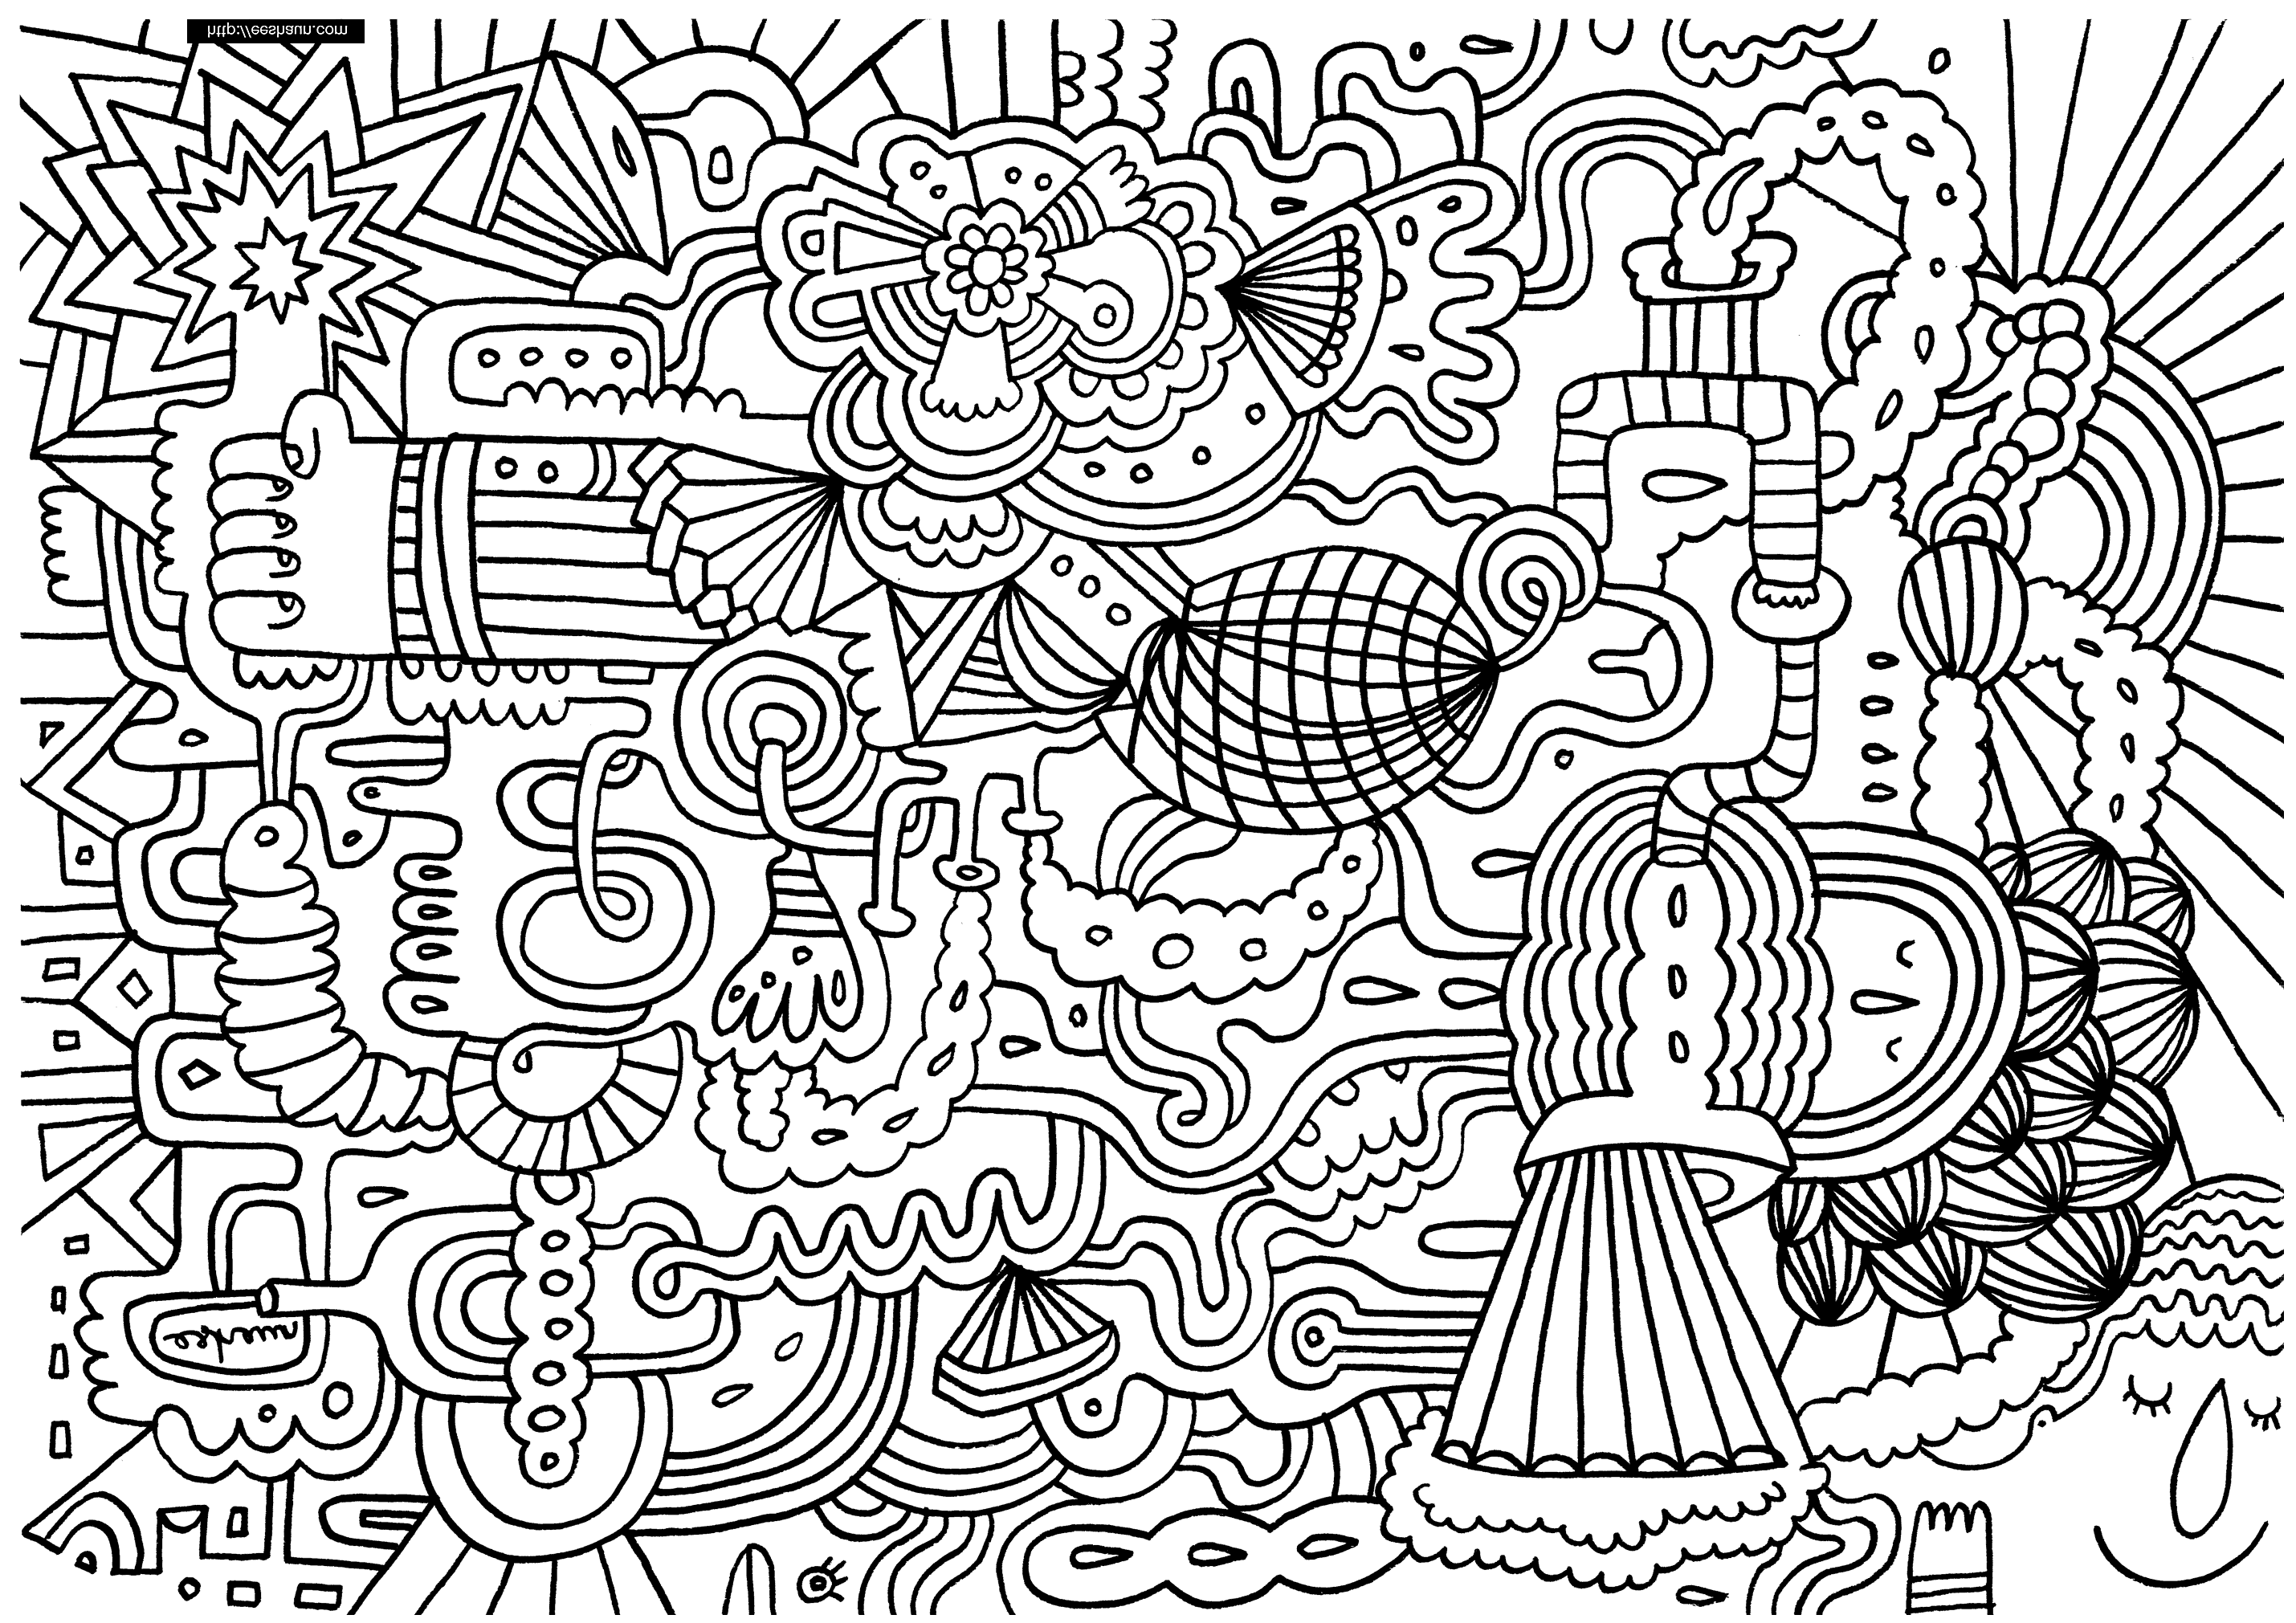 Bizarre Et Indescriptible Cute Coloring Pages Free Coloring Pages Abstract Coloring Pages